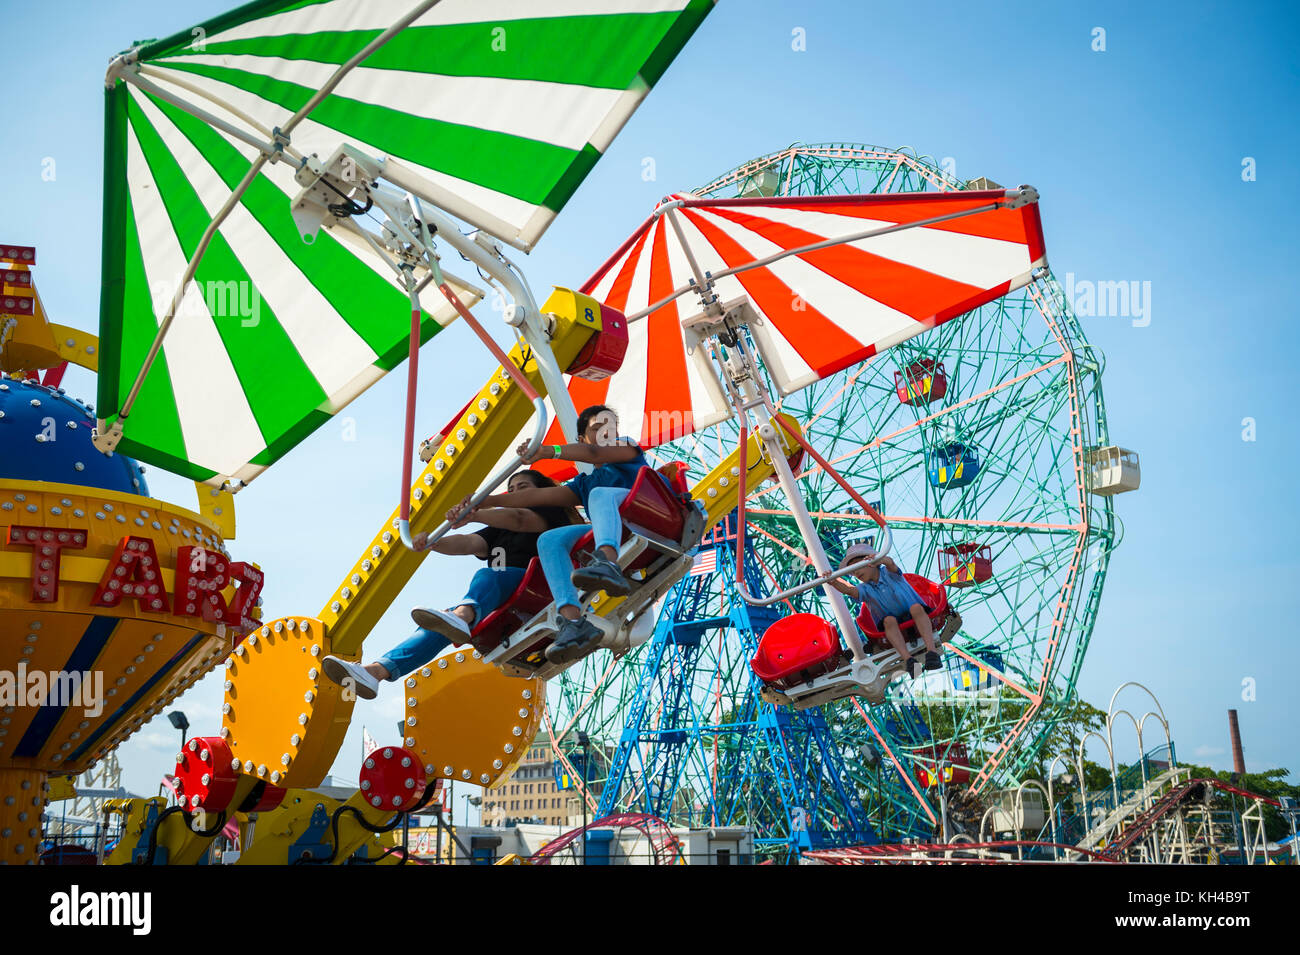 NEW YORK CITY - AUGUST 20, 2017: View of people enjoying a summer's day on crowded Coney Island boardwalk. - Stock Image